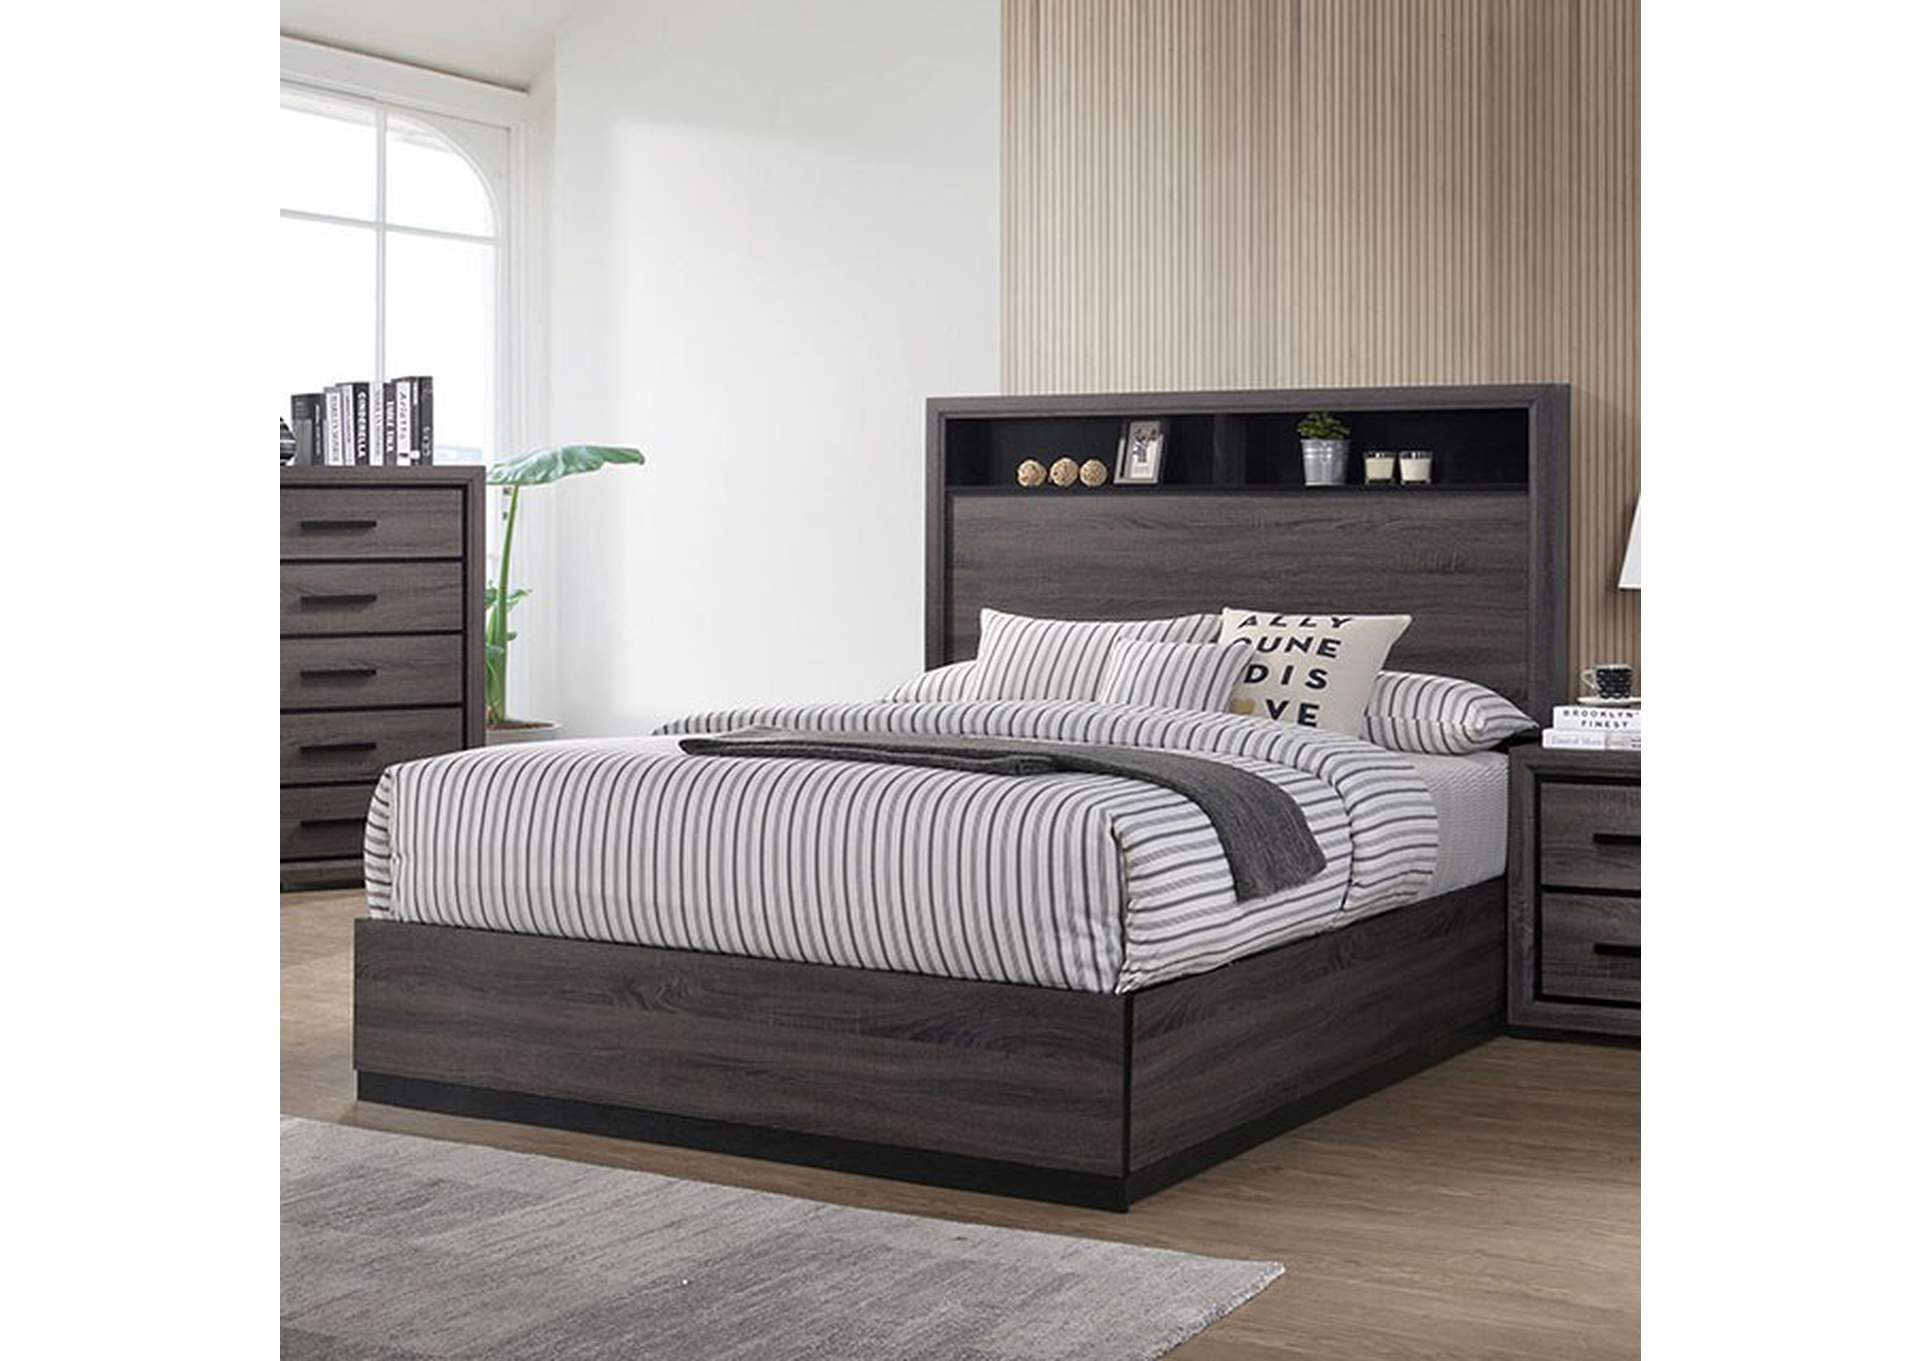 Conwy Gray Queen Bed,Furniture of America